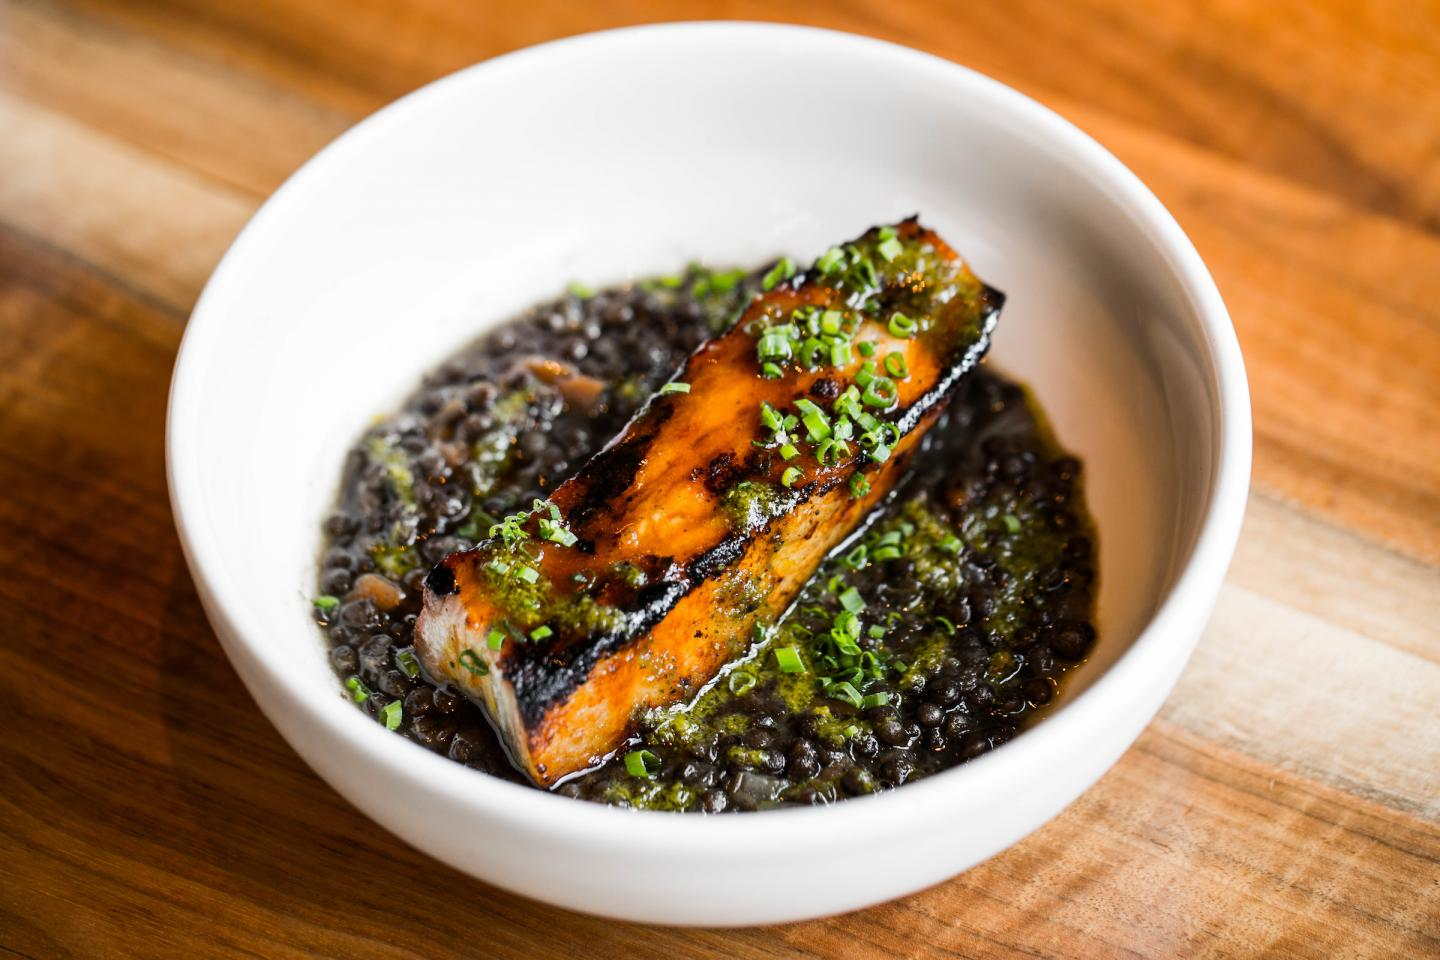 ema's grilled pork belly atop a bed of lentils in a white bowl